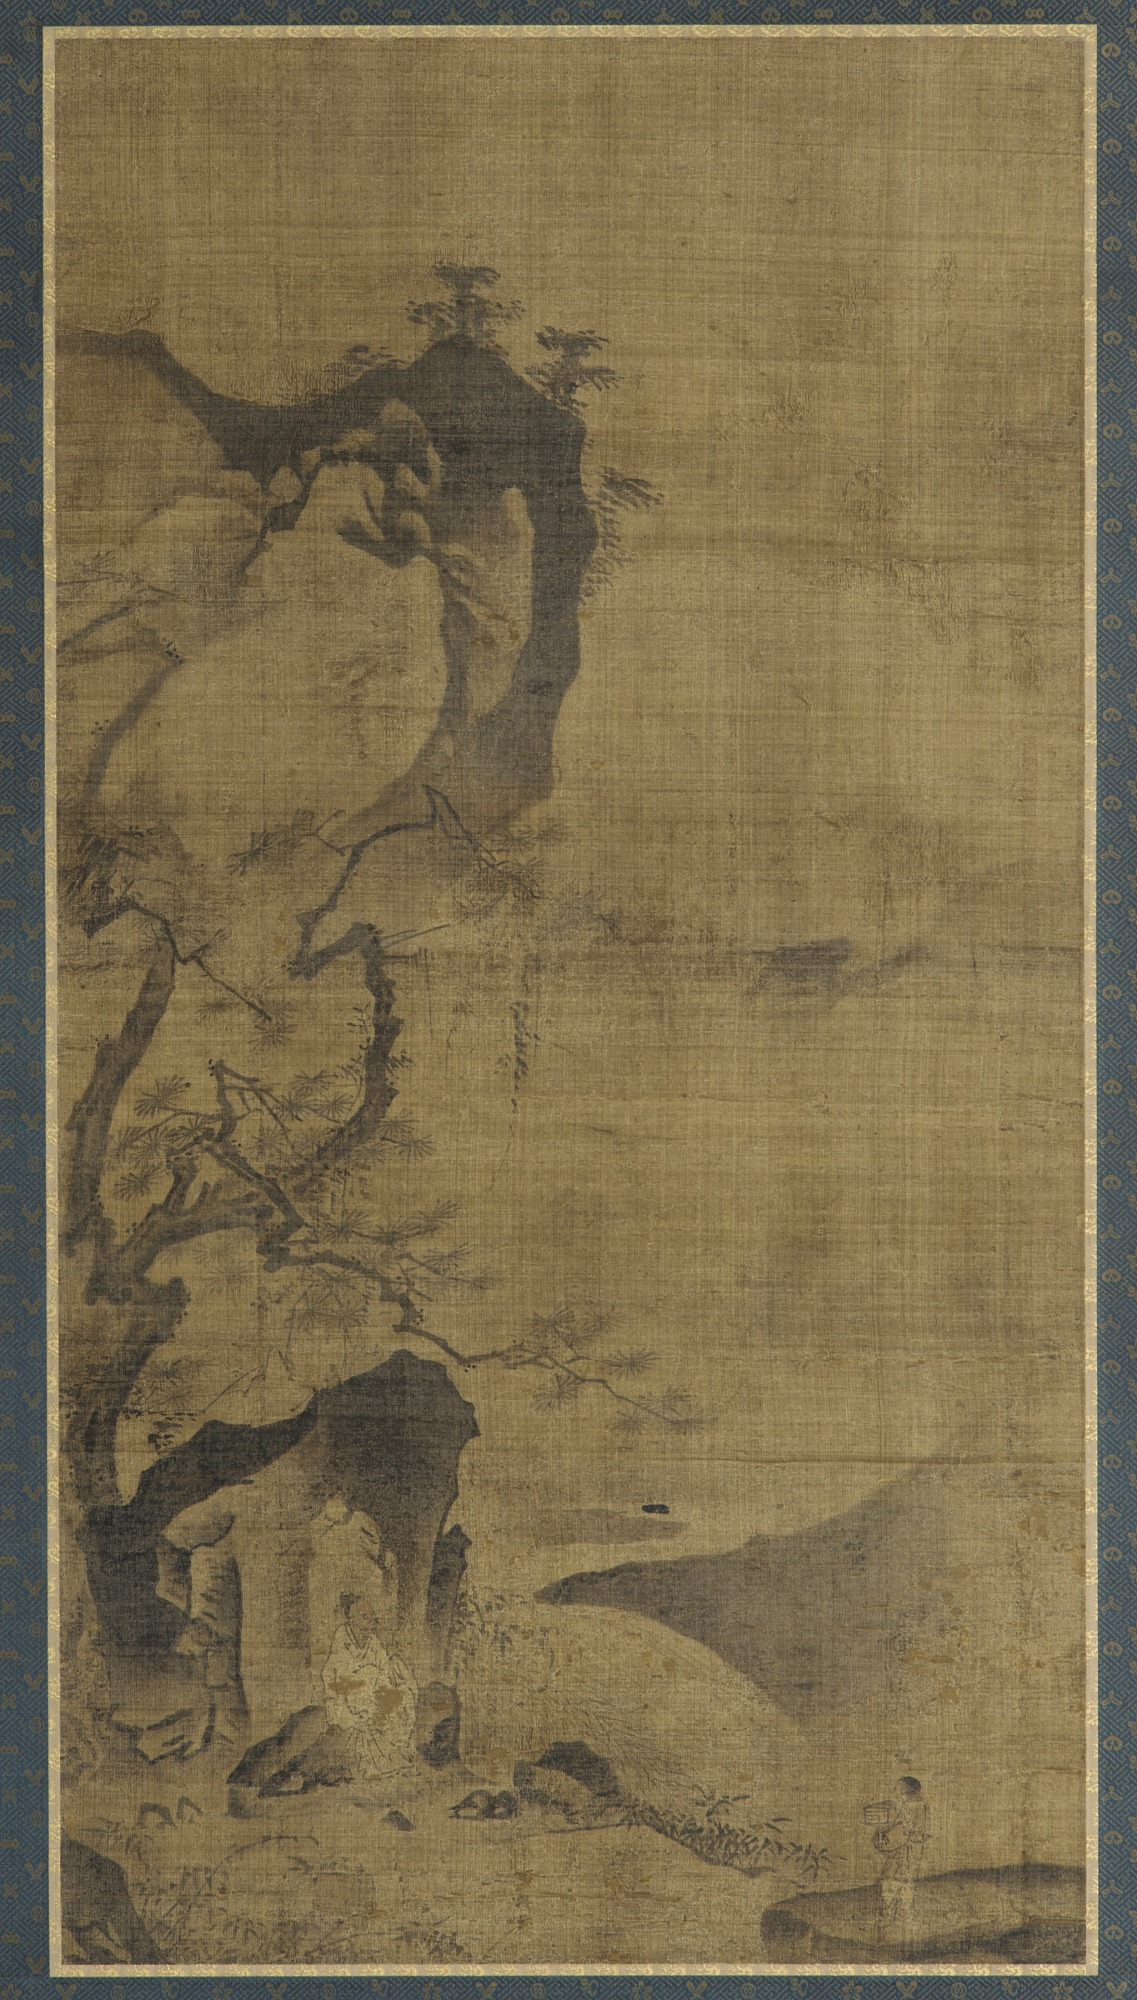 Landscape: mountains and water; a figure under a pine tree